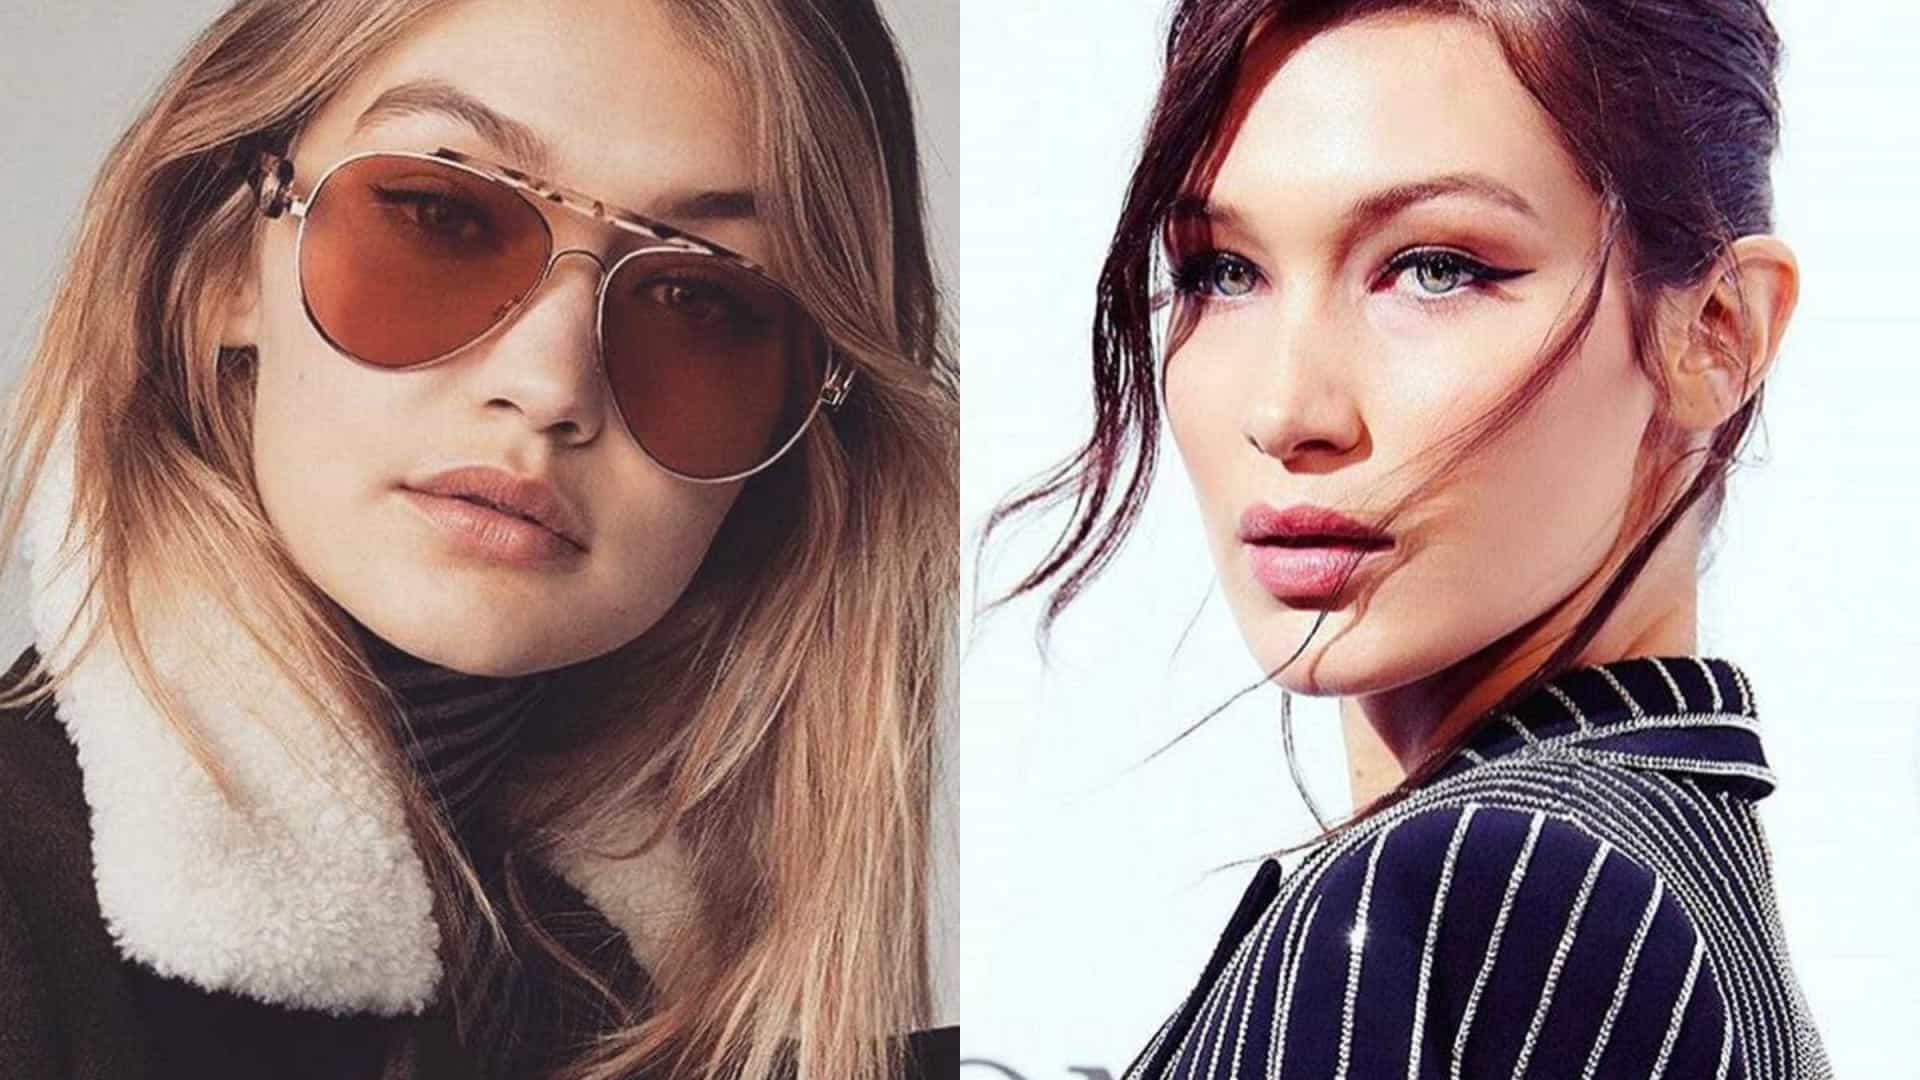 Prêmio 'International Model of the Year' tem duelo das irmãs Hadid